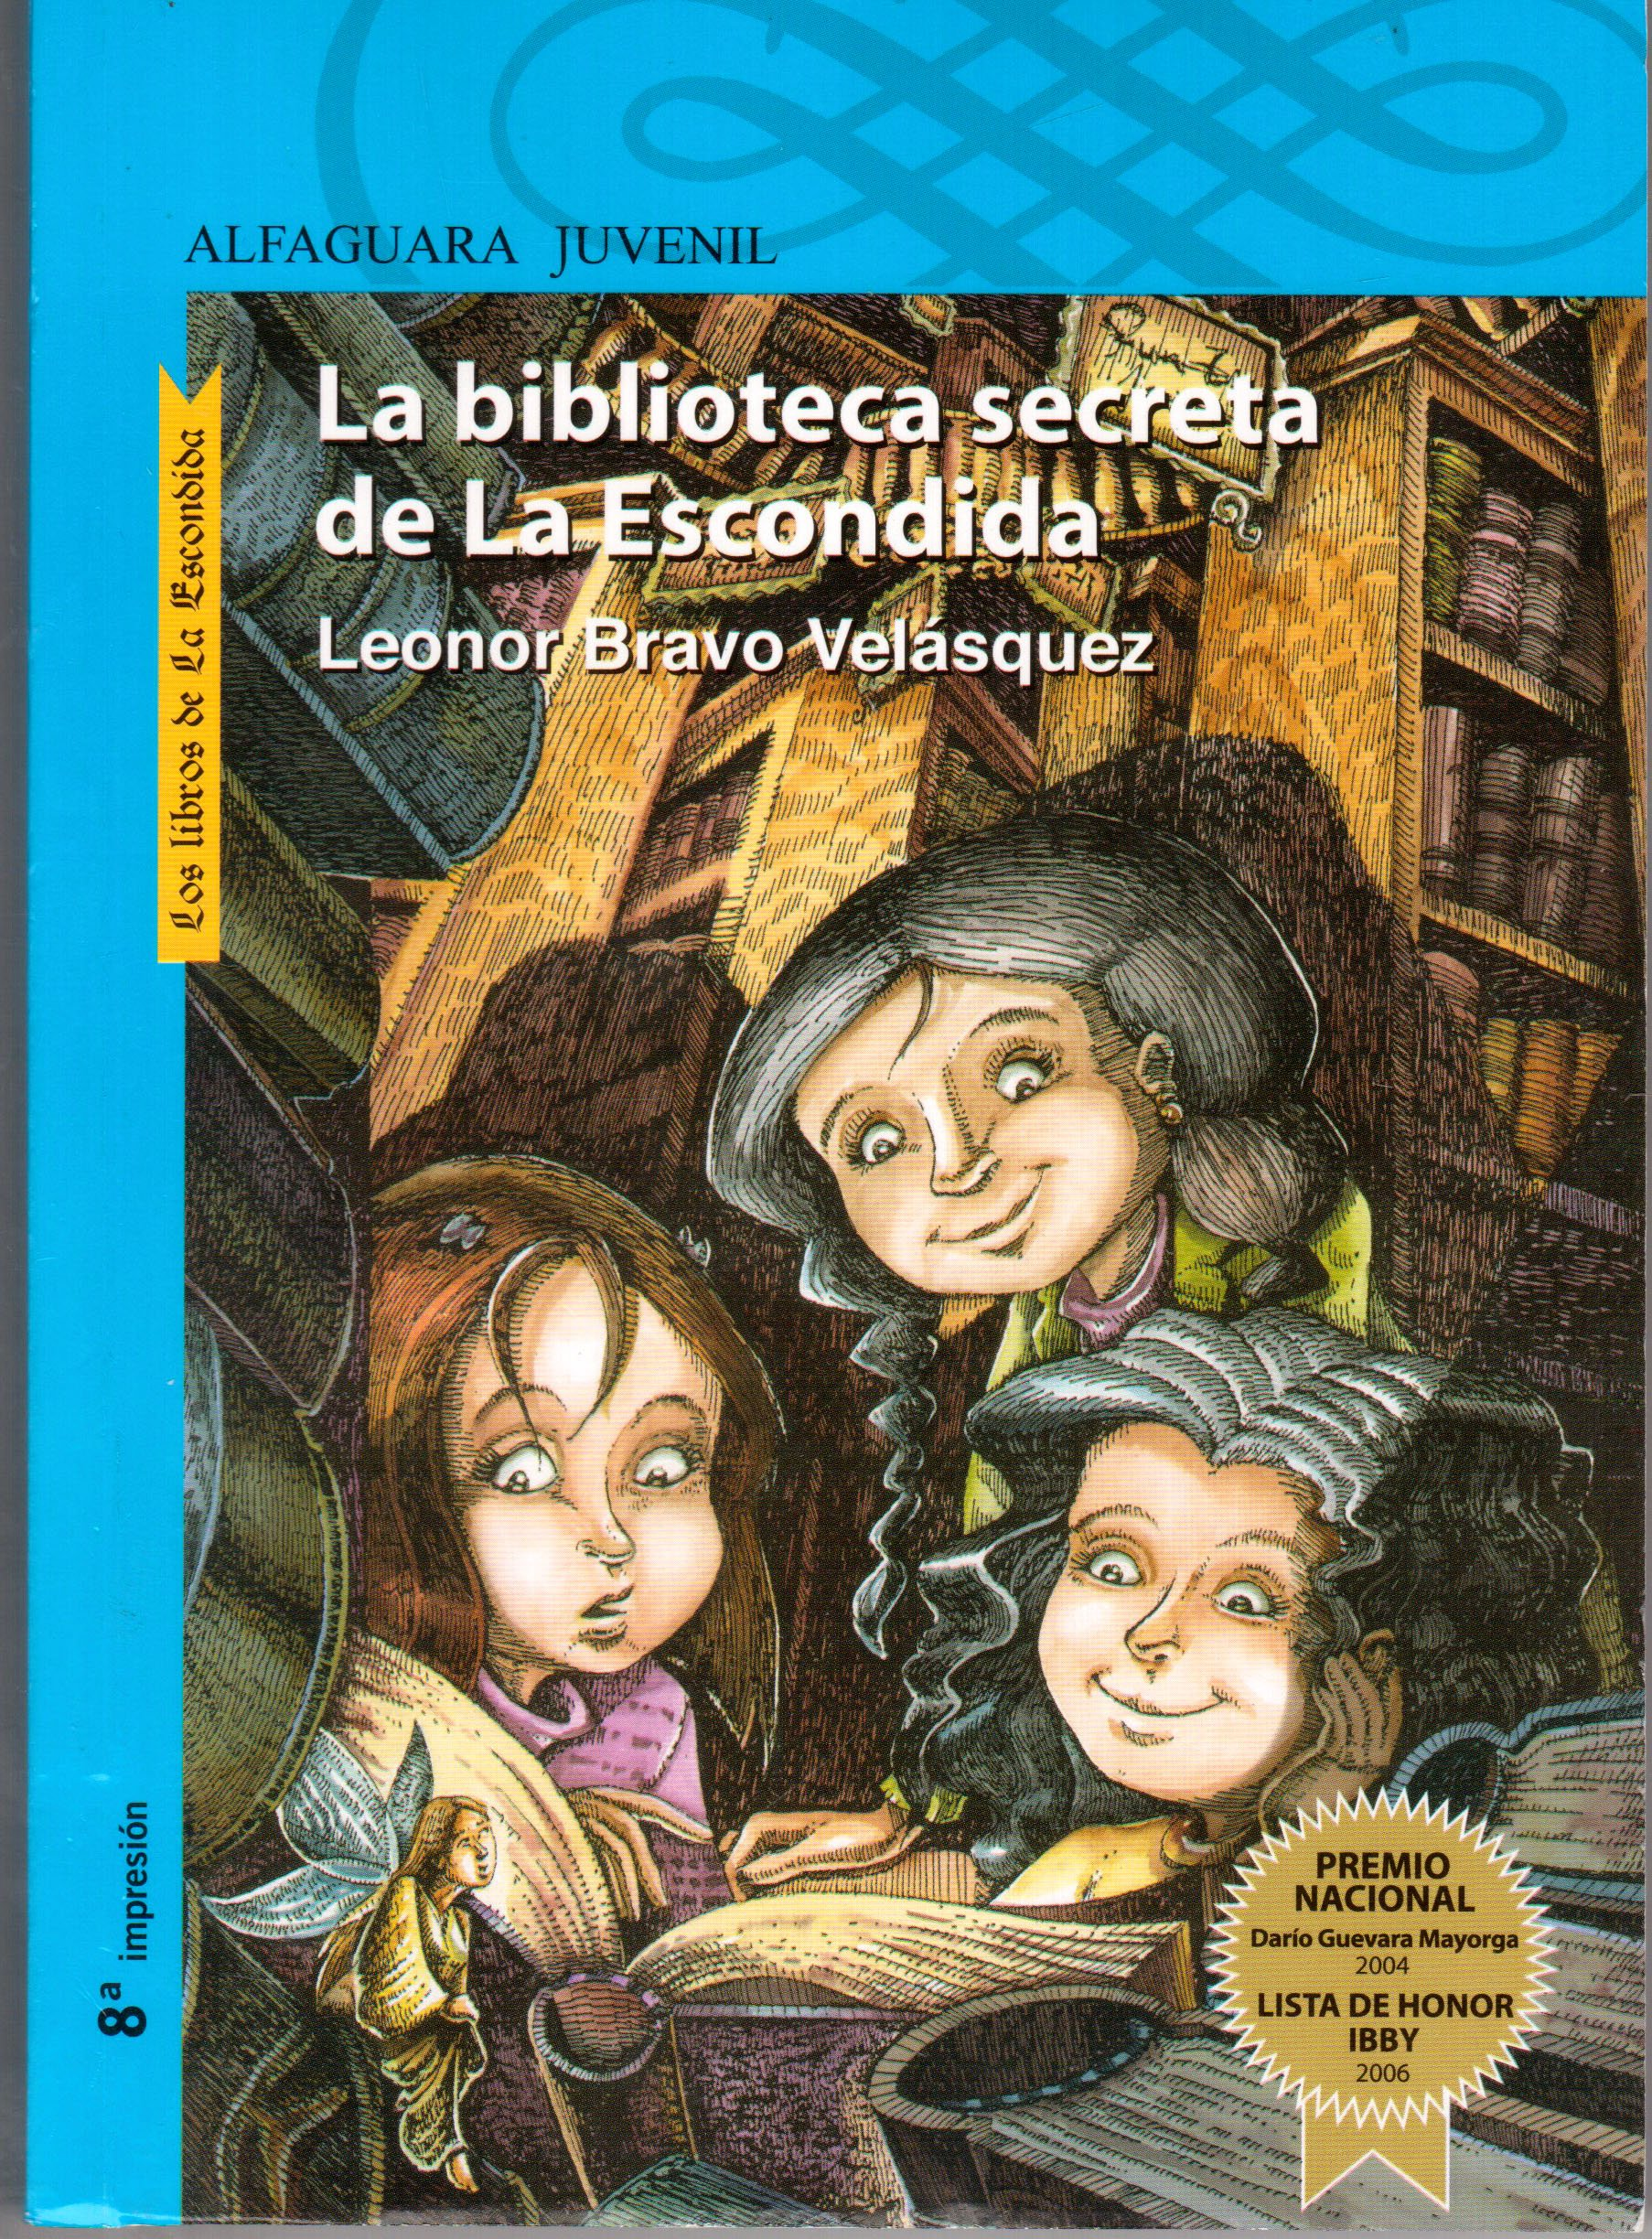 La biblioteca secreta de la escondida: Leonor Bravo Velásquez: 9789978076804: Amazon.com: Books